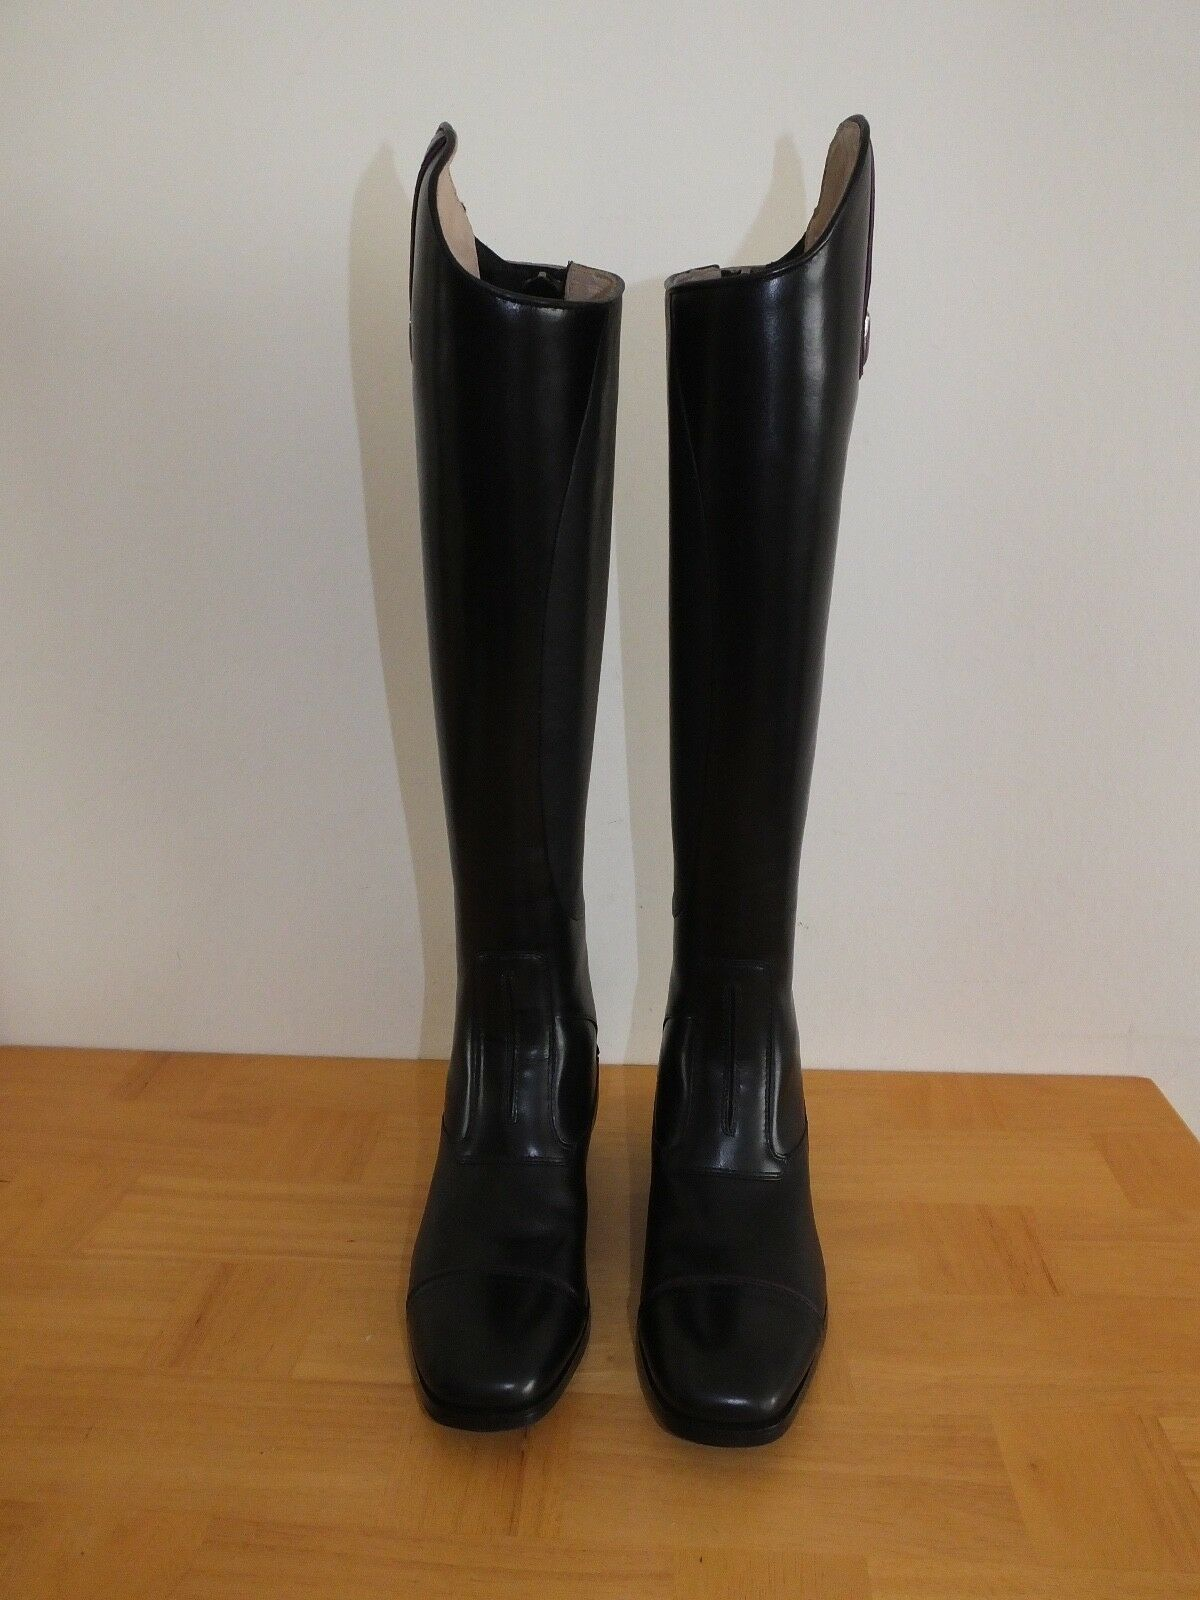 Limited Edition Ariat FEI  Monaco LX Dress Zip bootsBRAND NEW UK4 EU37 RRP  factory outlet